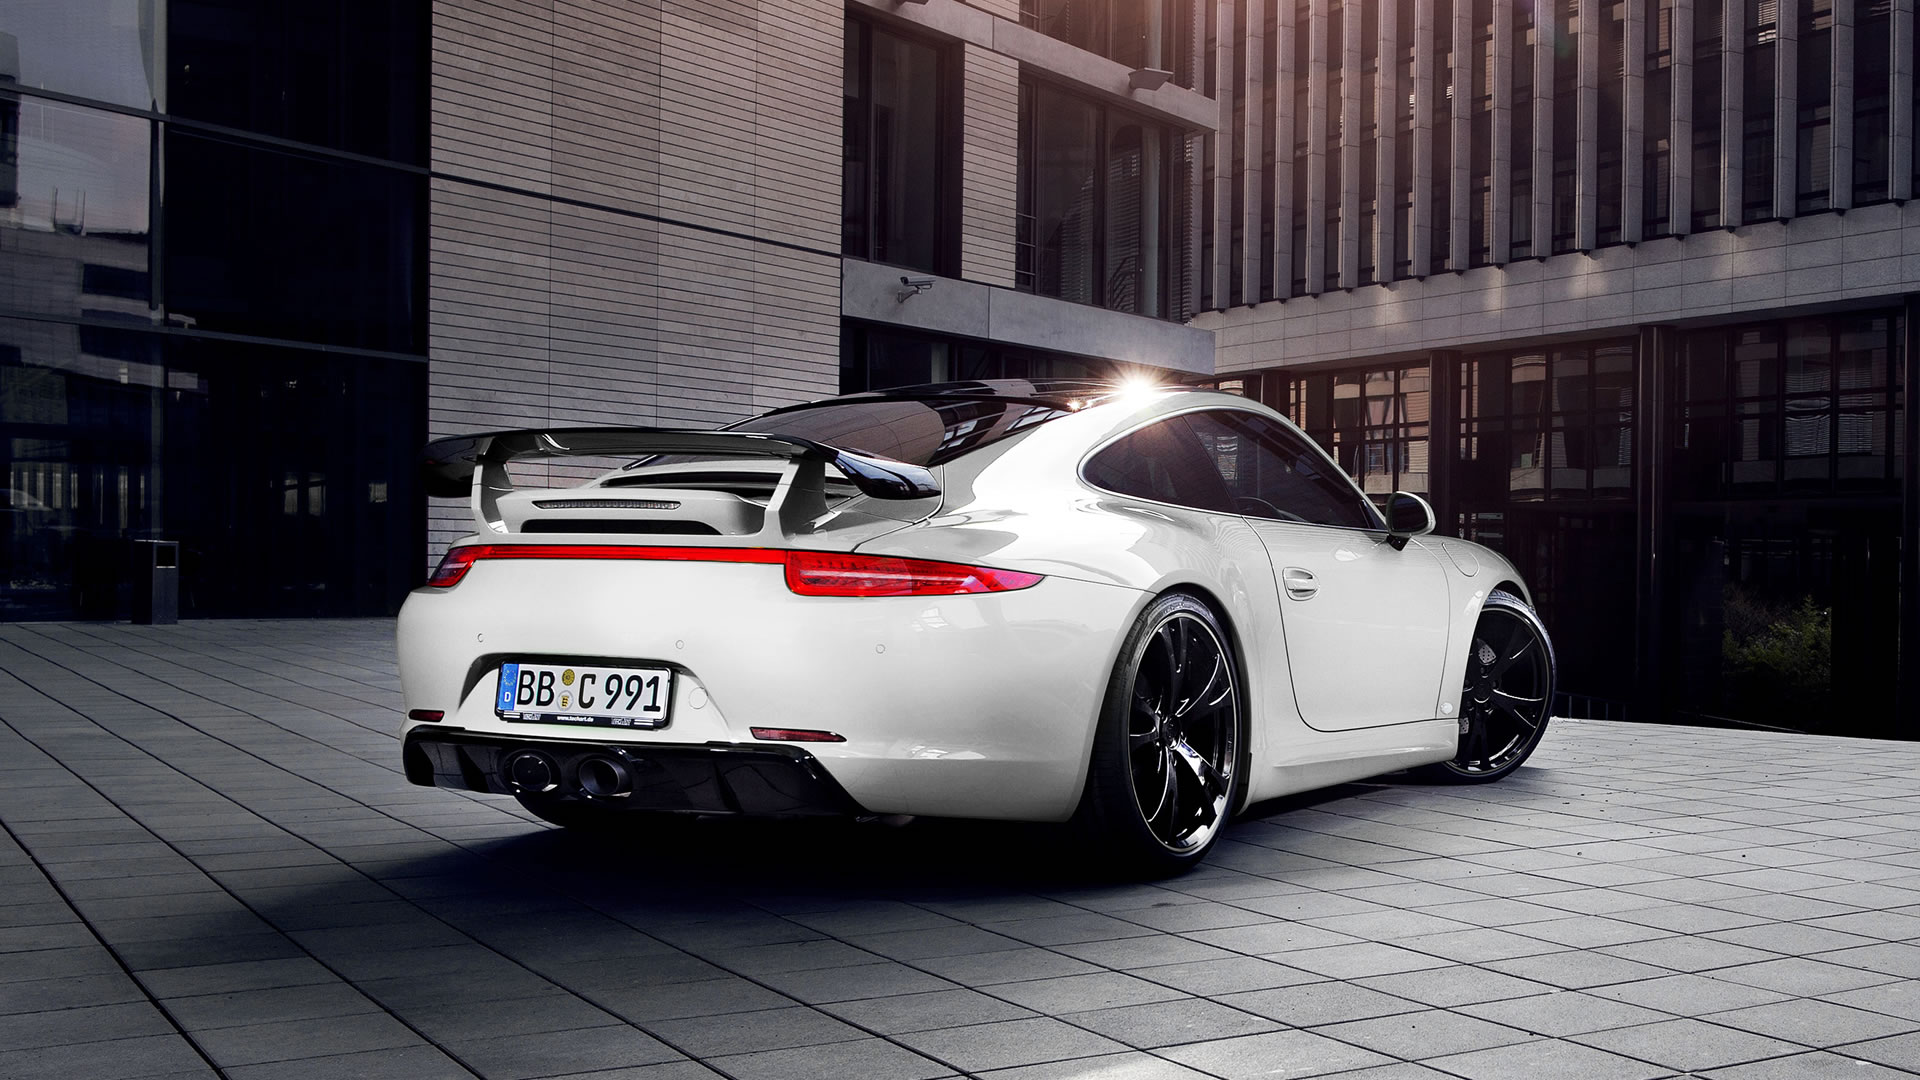 2014 porsche 911 carrera 4s coupe by techart wallpaper 1920 x 1080